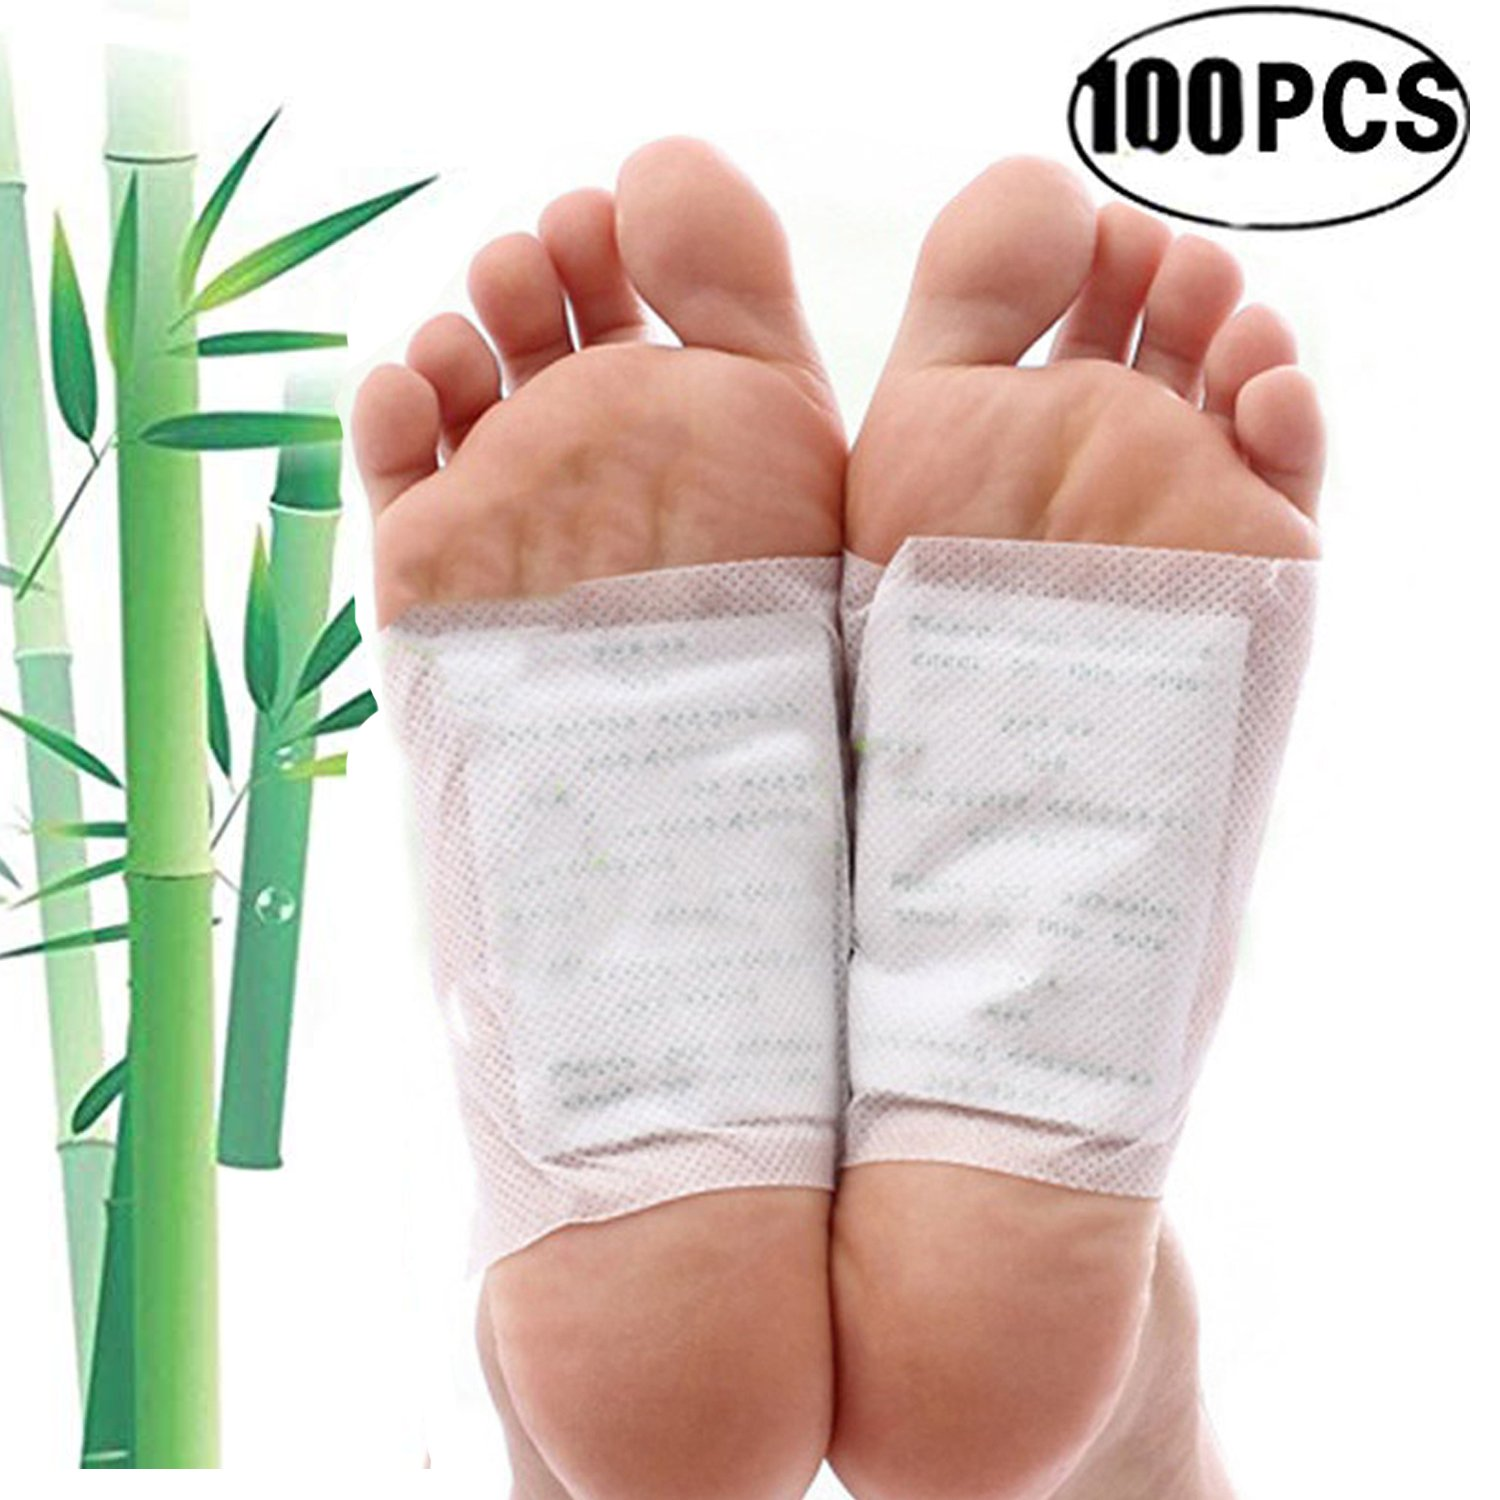 Foot Patches,Kapmore 100Pcs Foot Pads Patches Pain Relief Health Care Foot Care Pad Foot Pads Patch Adhesive Sheet